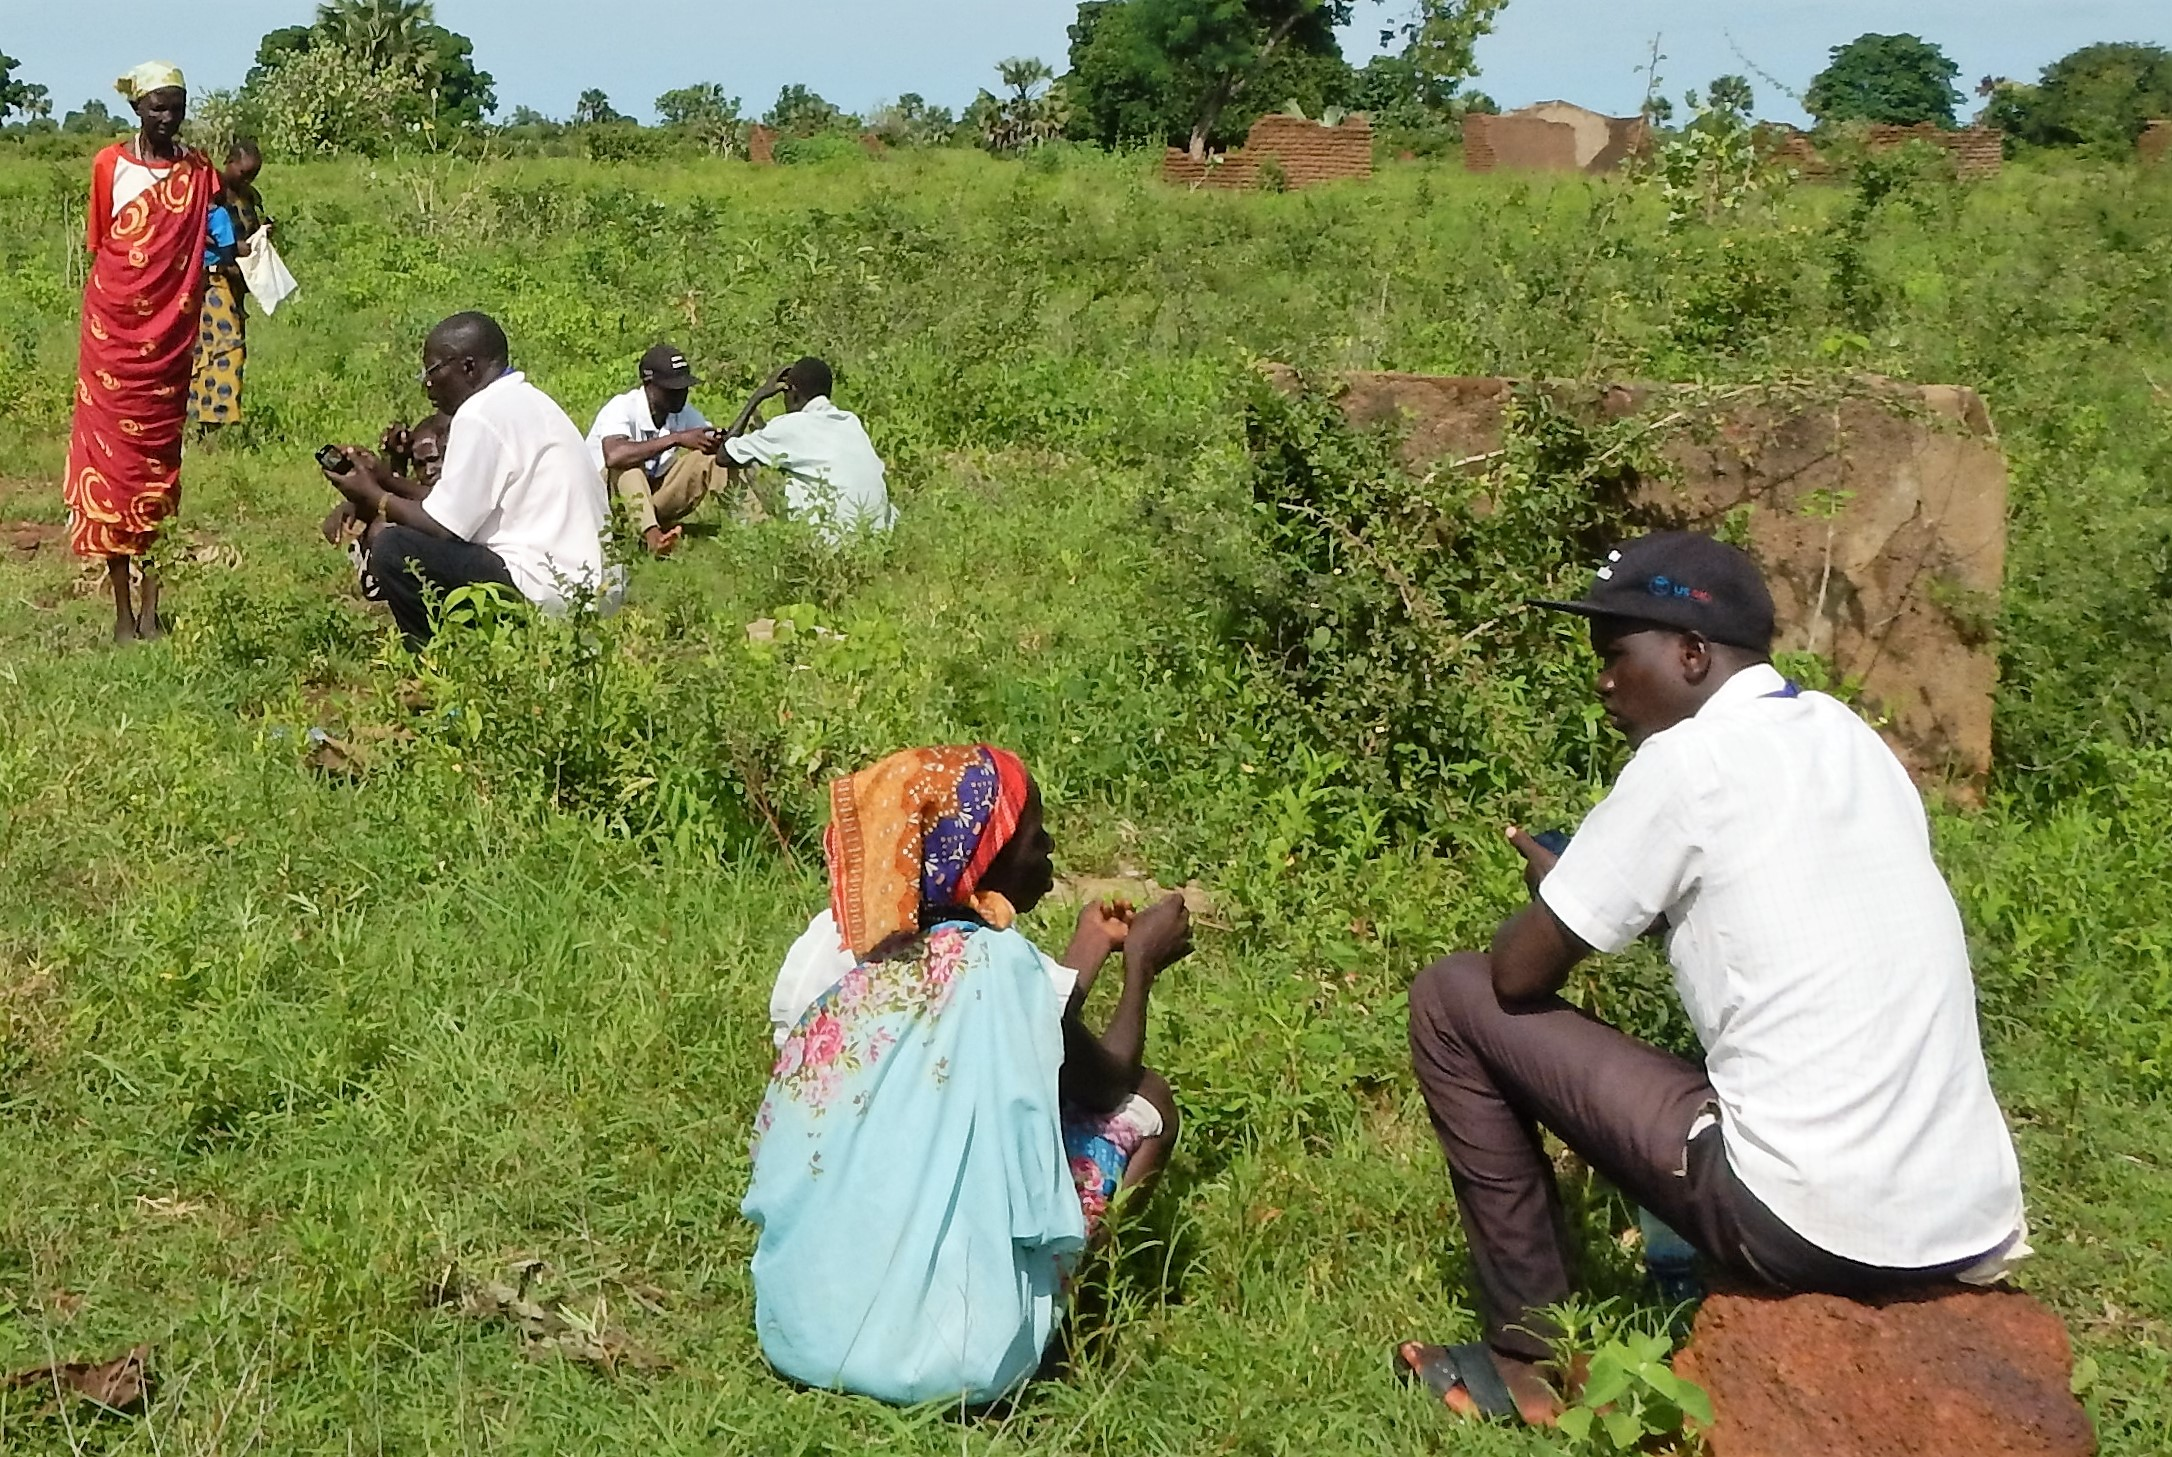 REACH enumerators interviewing IDPs in July 2017 at Masna collective site in Wau town, Western Bahr el Ghazal State, South Sudan ©REACH/2017